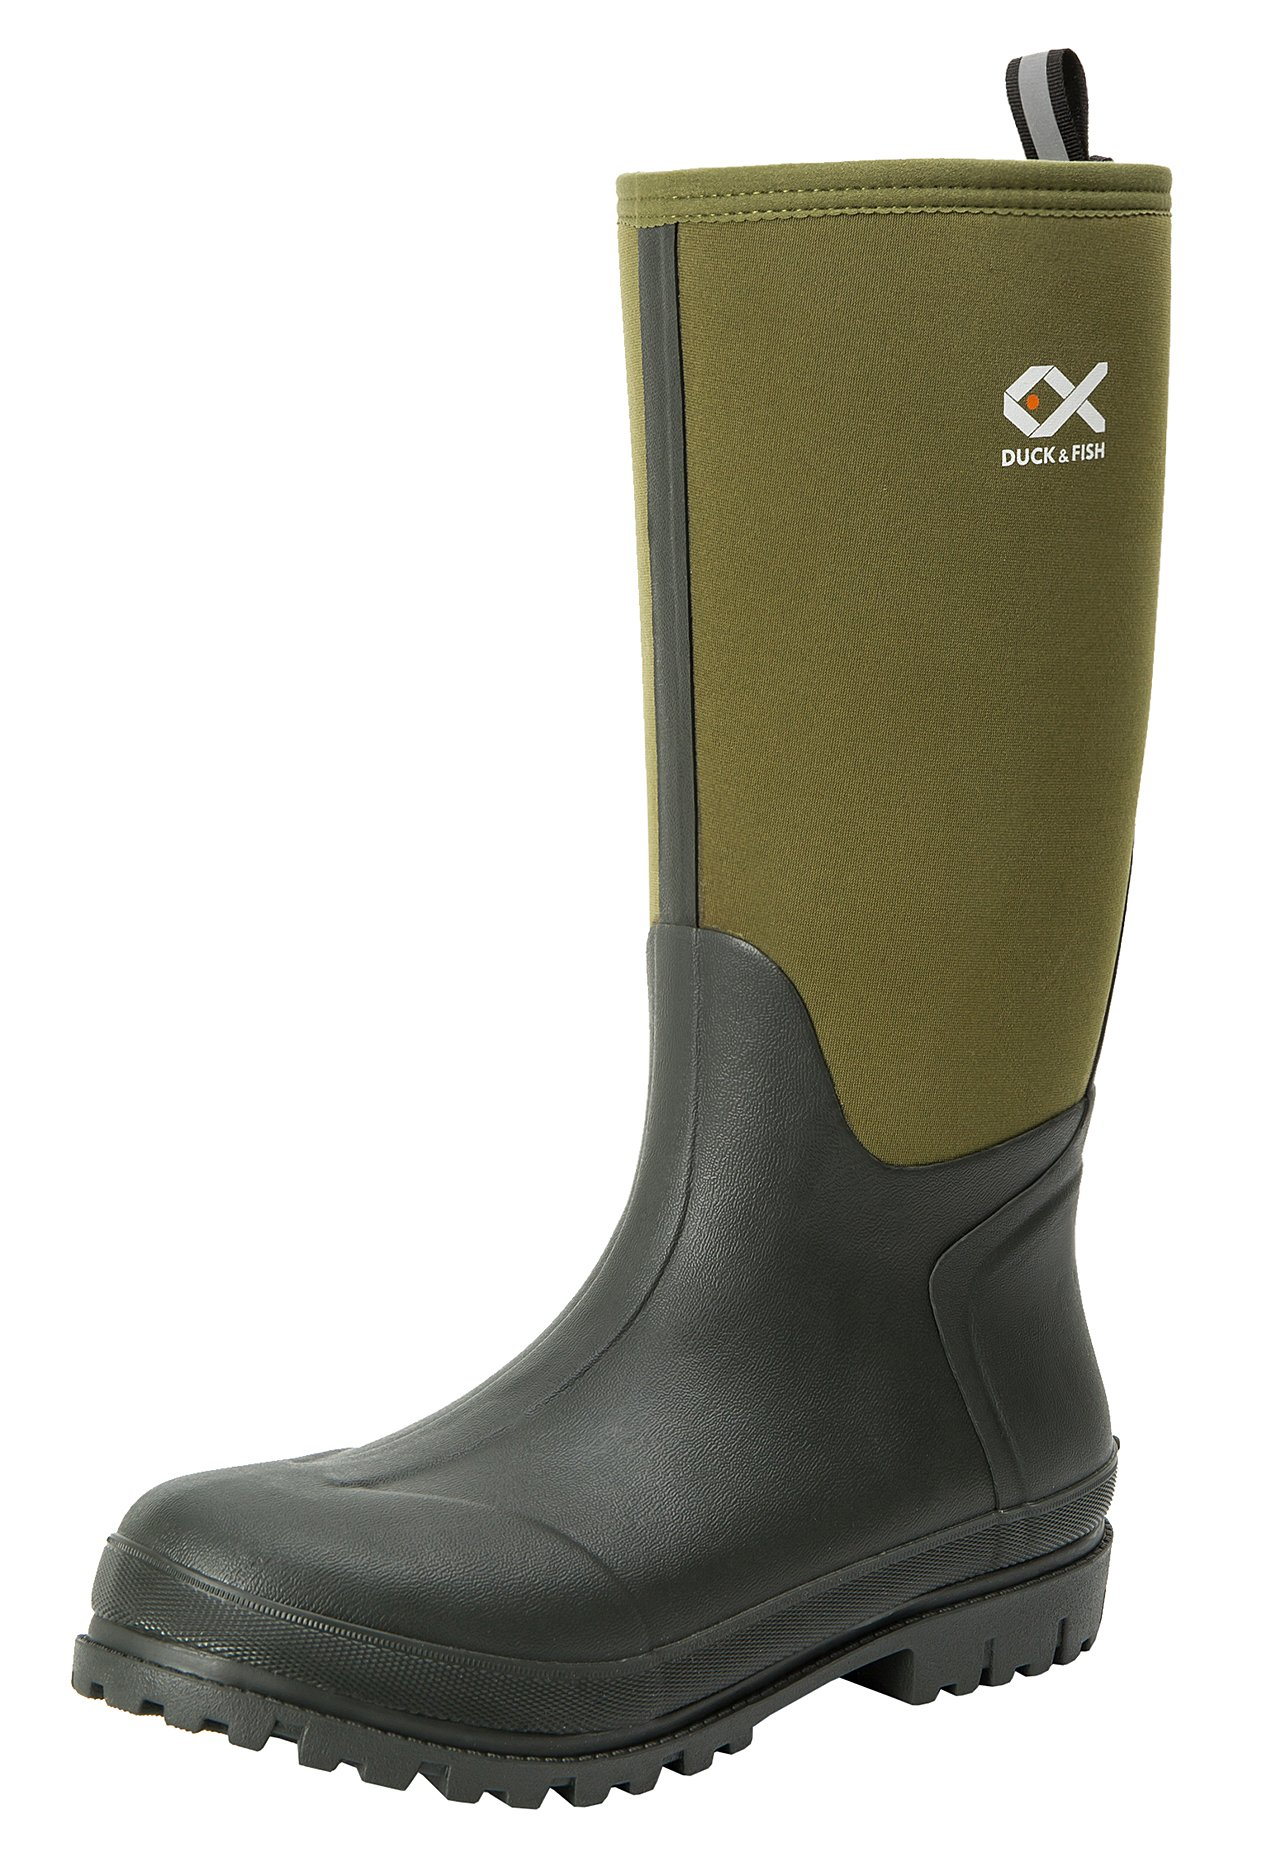 Duck Fish 16'' Fishing Hunting Neoprene Rubber Molded Outsole Knee Boot (US 11, Green) by DUCK & FISH